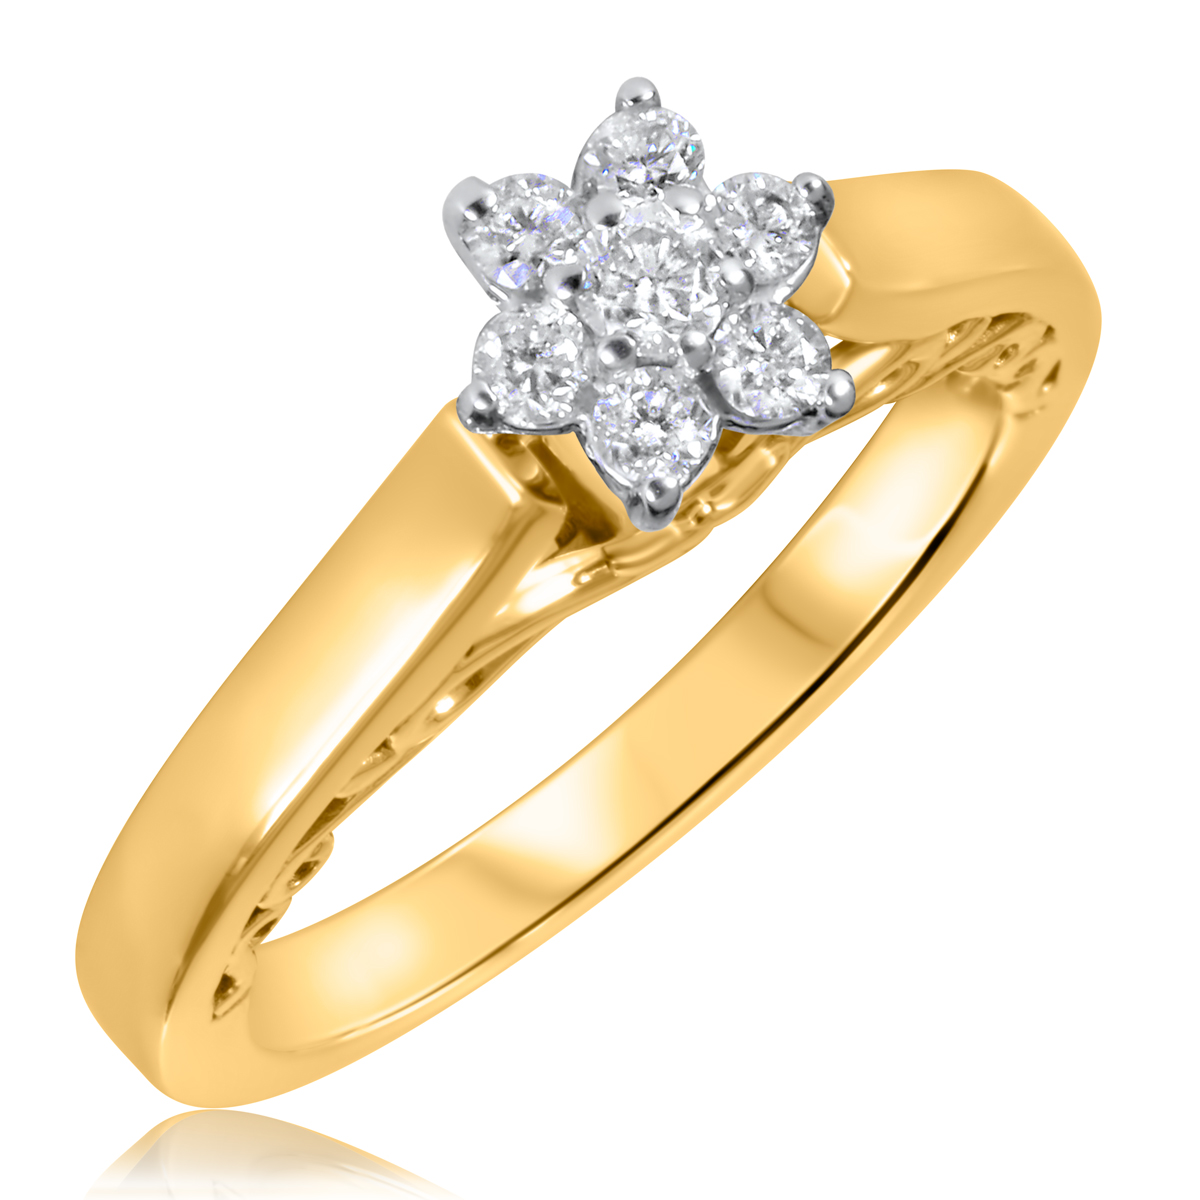 1/4 CT. T.W. Diamond Ladies Engagement Ring 10K Yellow Gold- Size 8